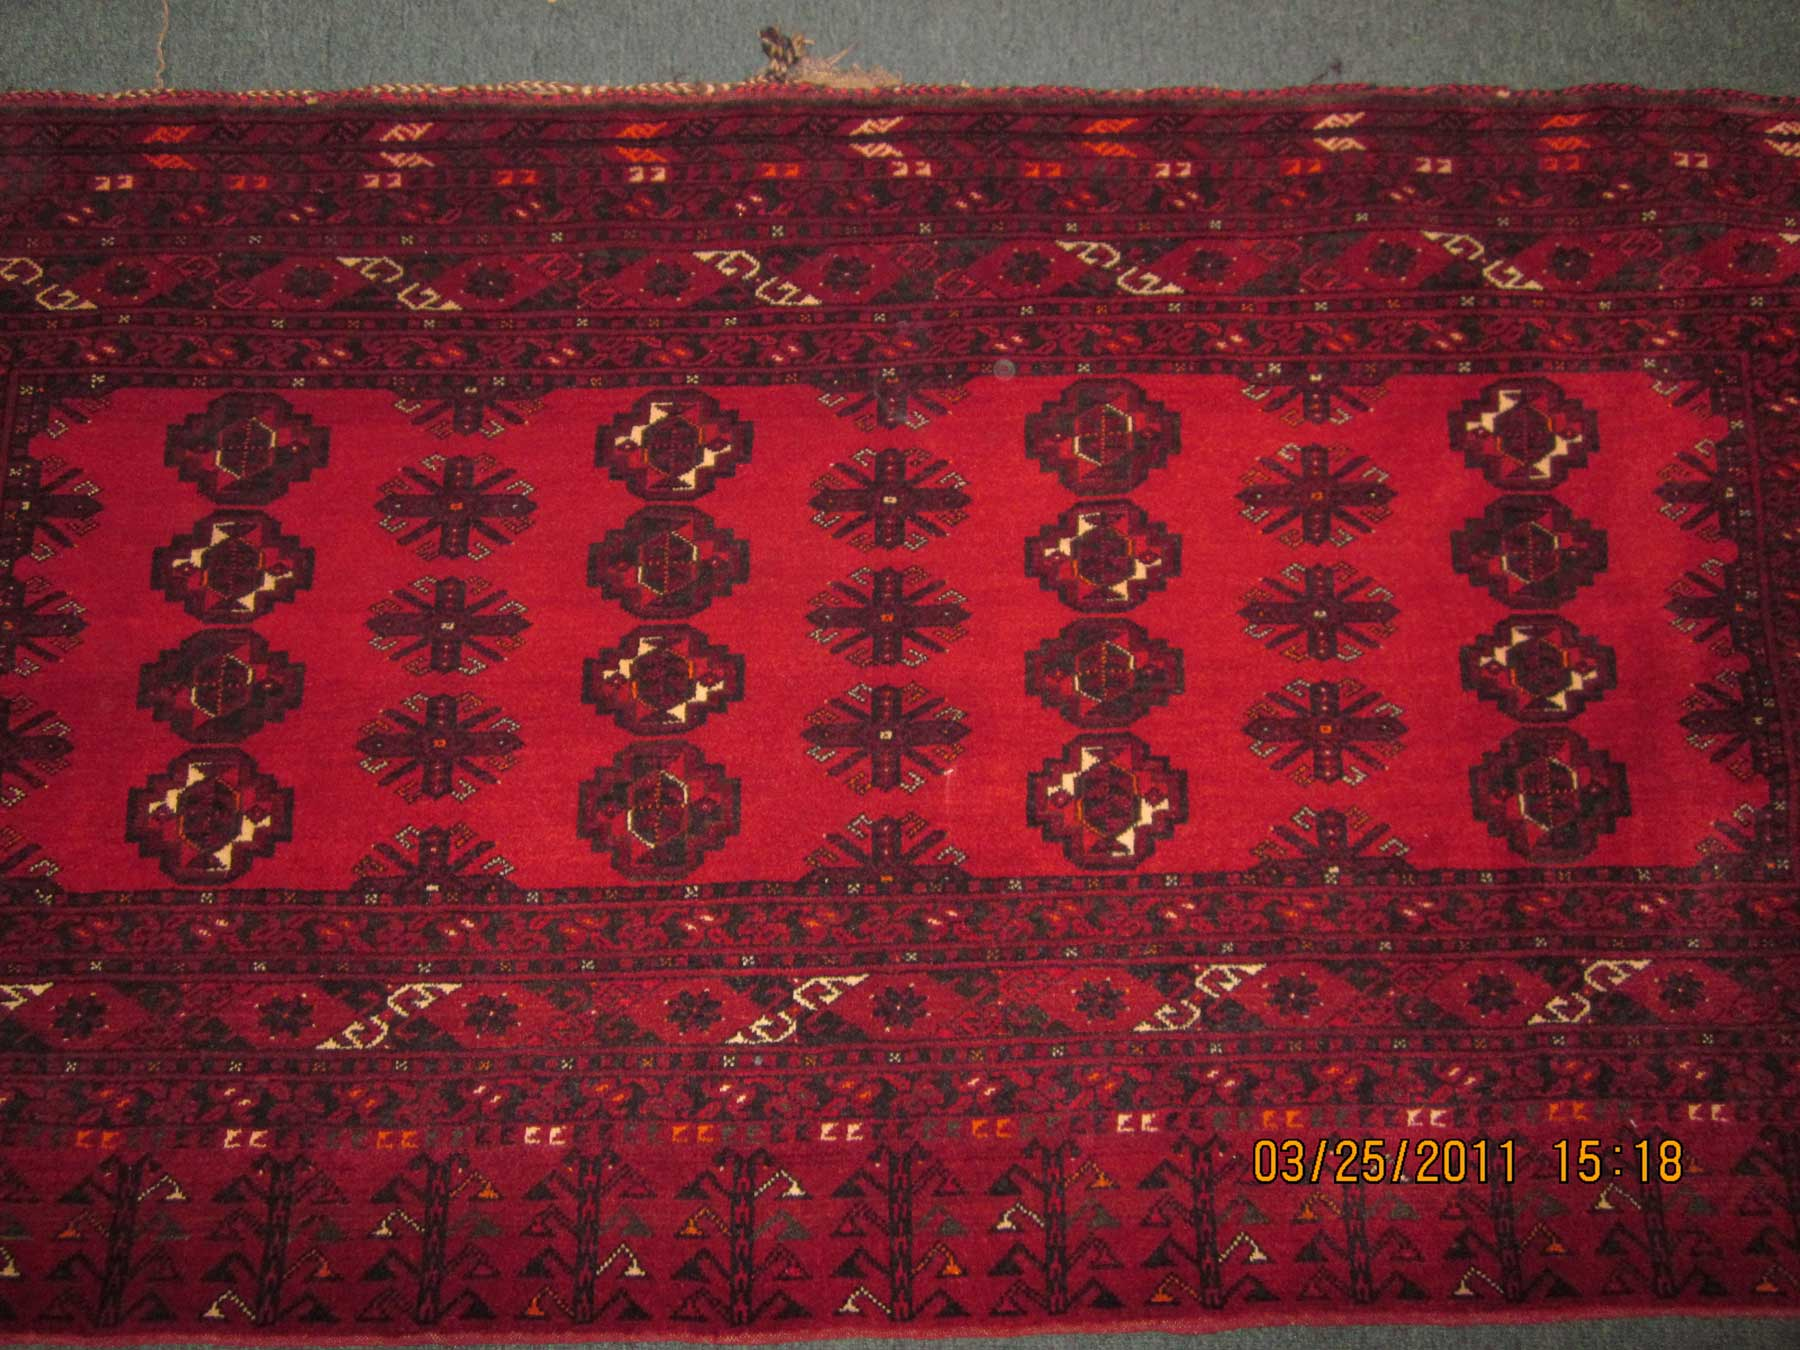 #8) Old Turkoman Chuval (very large pillow cover) Perfect condition with the full kilim backing. Gorgeous deep red and finely woven.